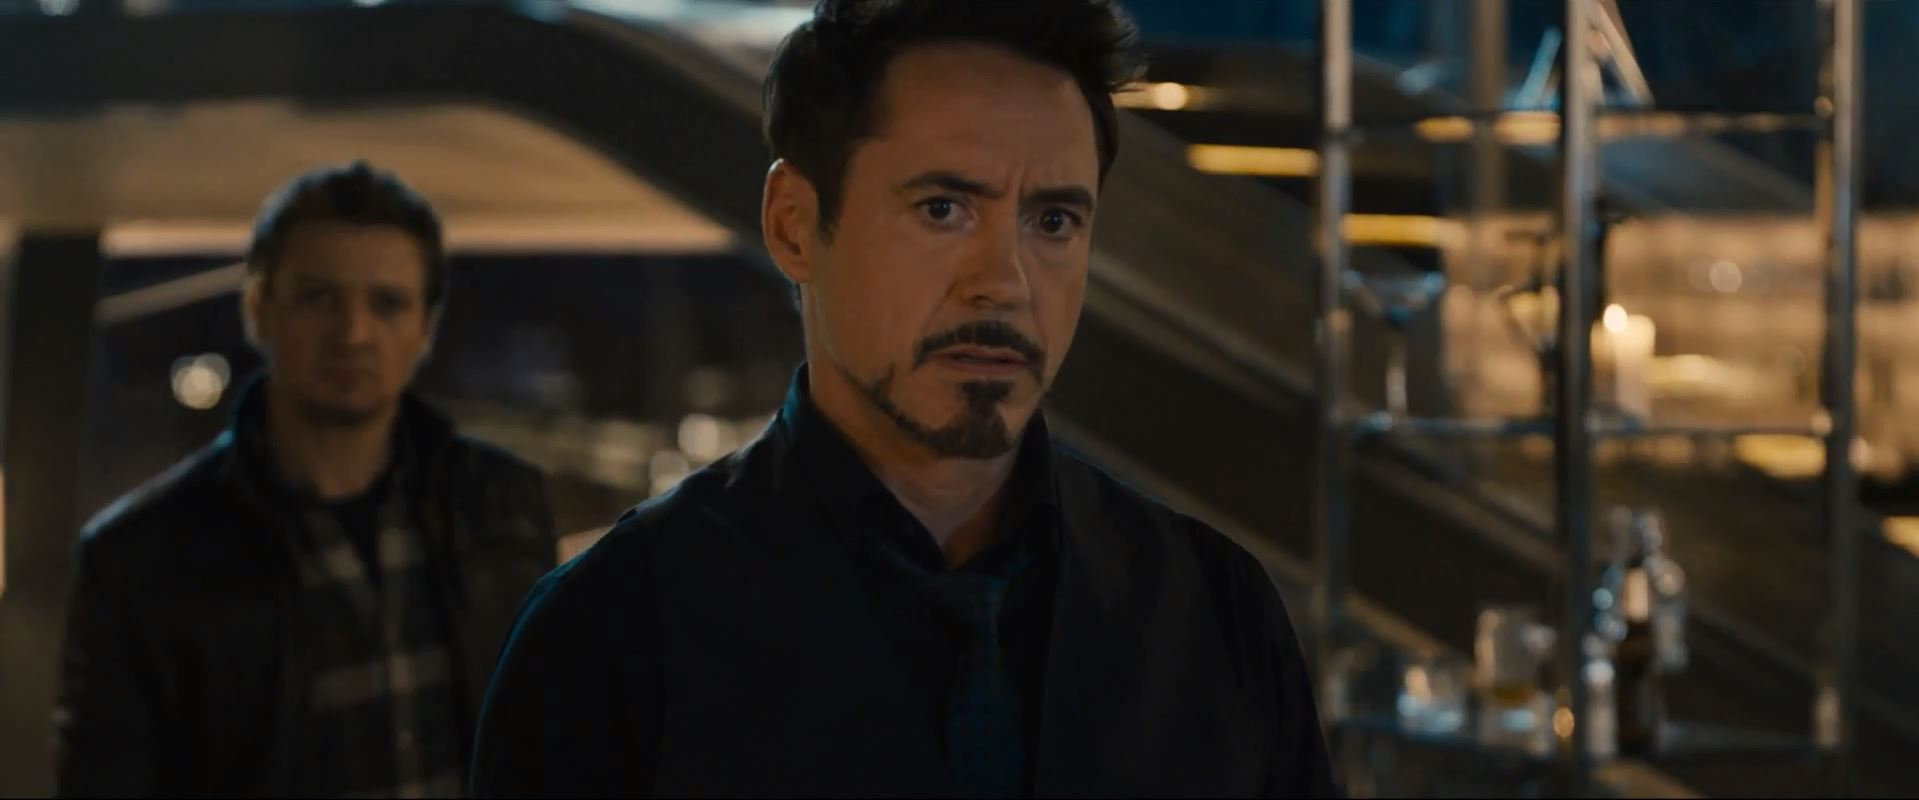 Avengers Age Of Ultron Trailer Released - Robert Downey, Jr. as Tony Stark Iron Man